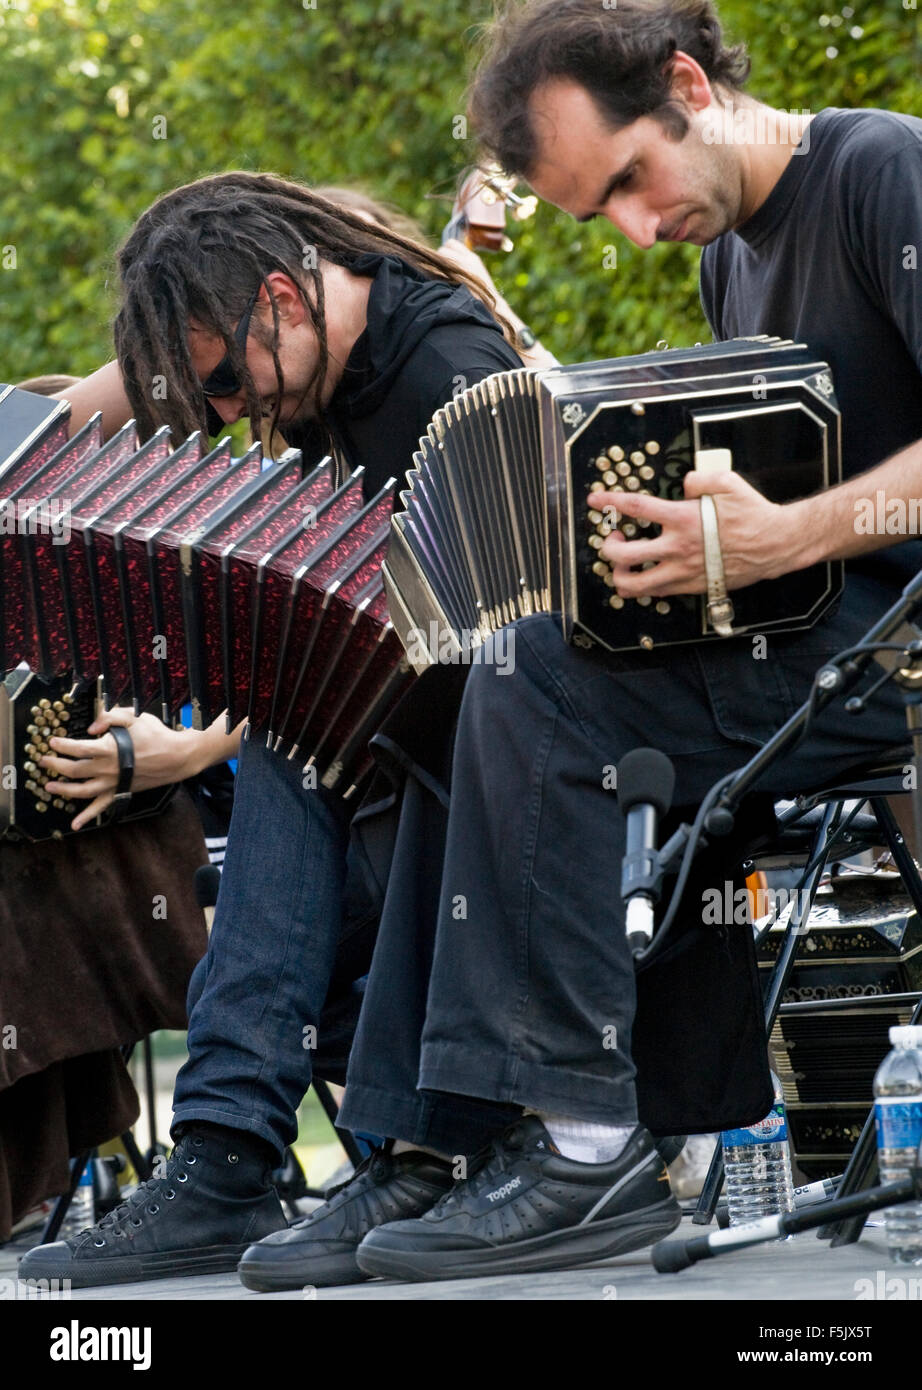 Bandoneon player. The bandoneon is a type of concertina particularly popular in Argentina - Stock Image